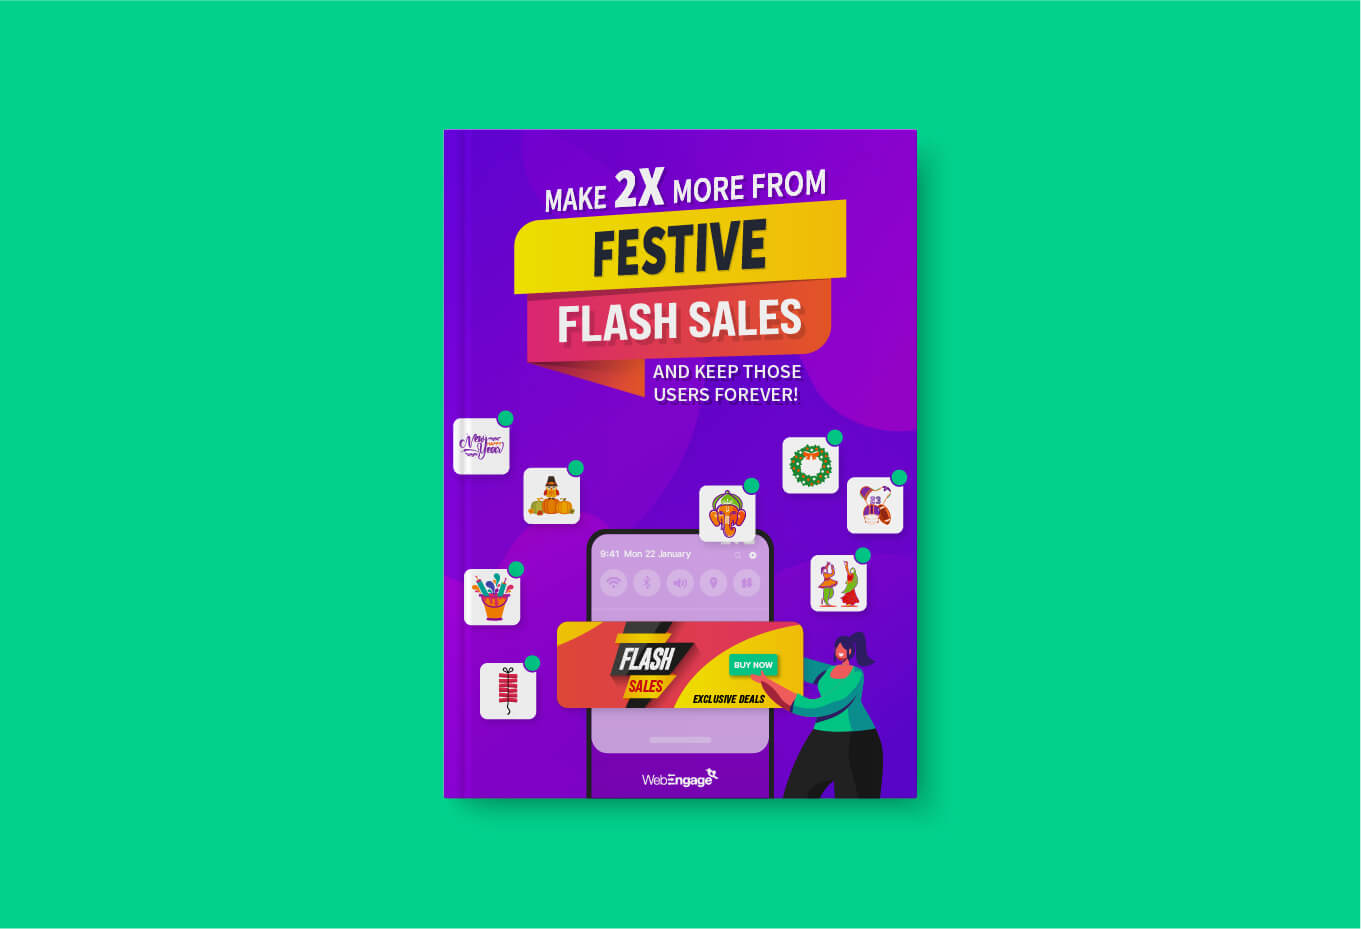 Flash Sale Guide: Make 2X More From Your Festive Sales & Keep Those Users Forever!